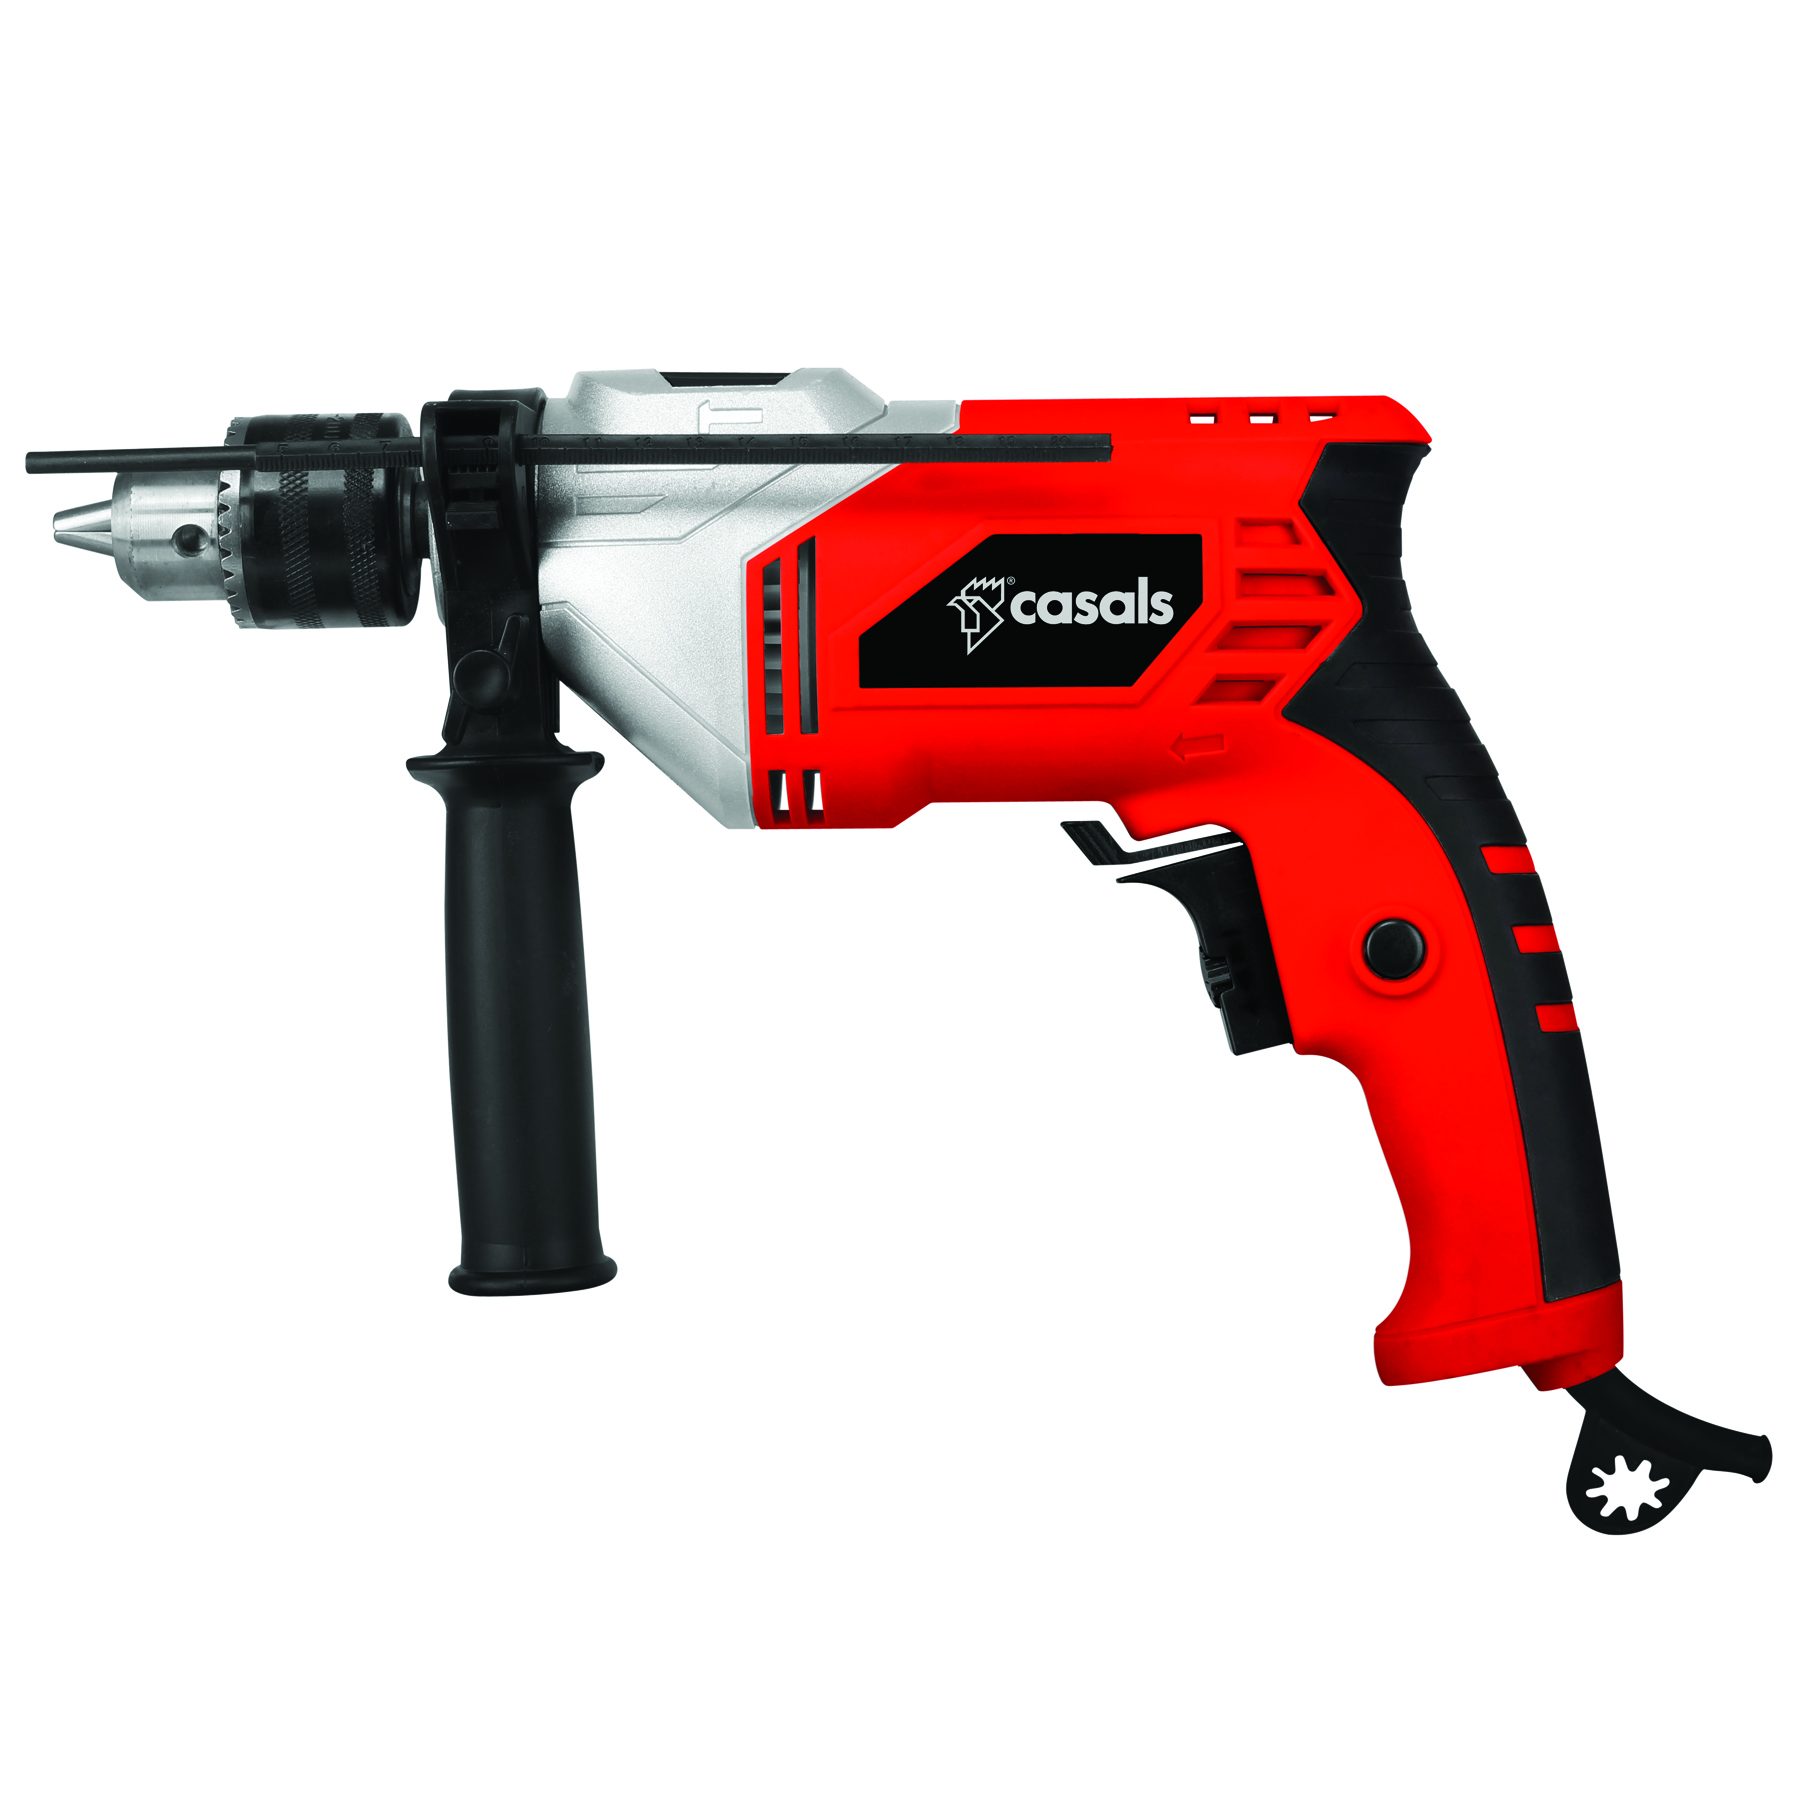 Casals Drill Impact Plastic Red 13mm Variable Speed